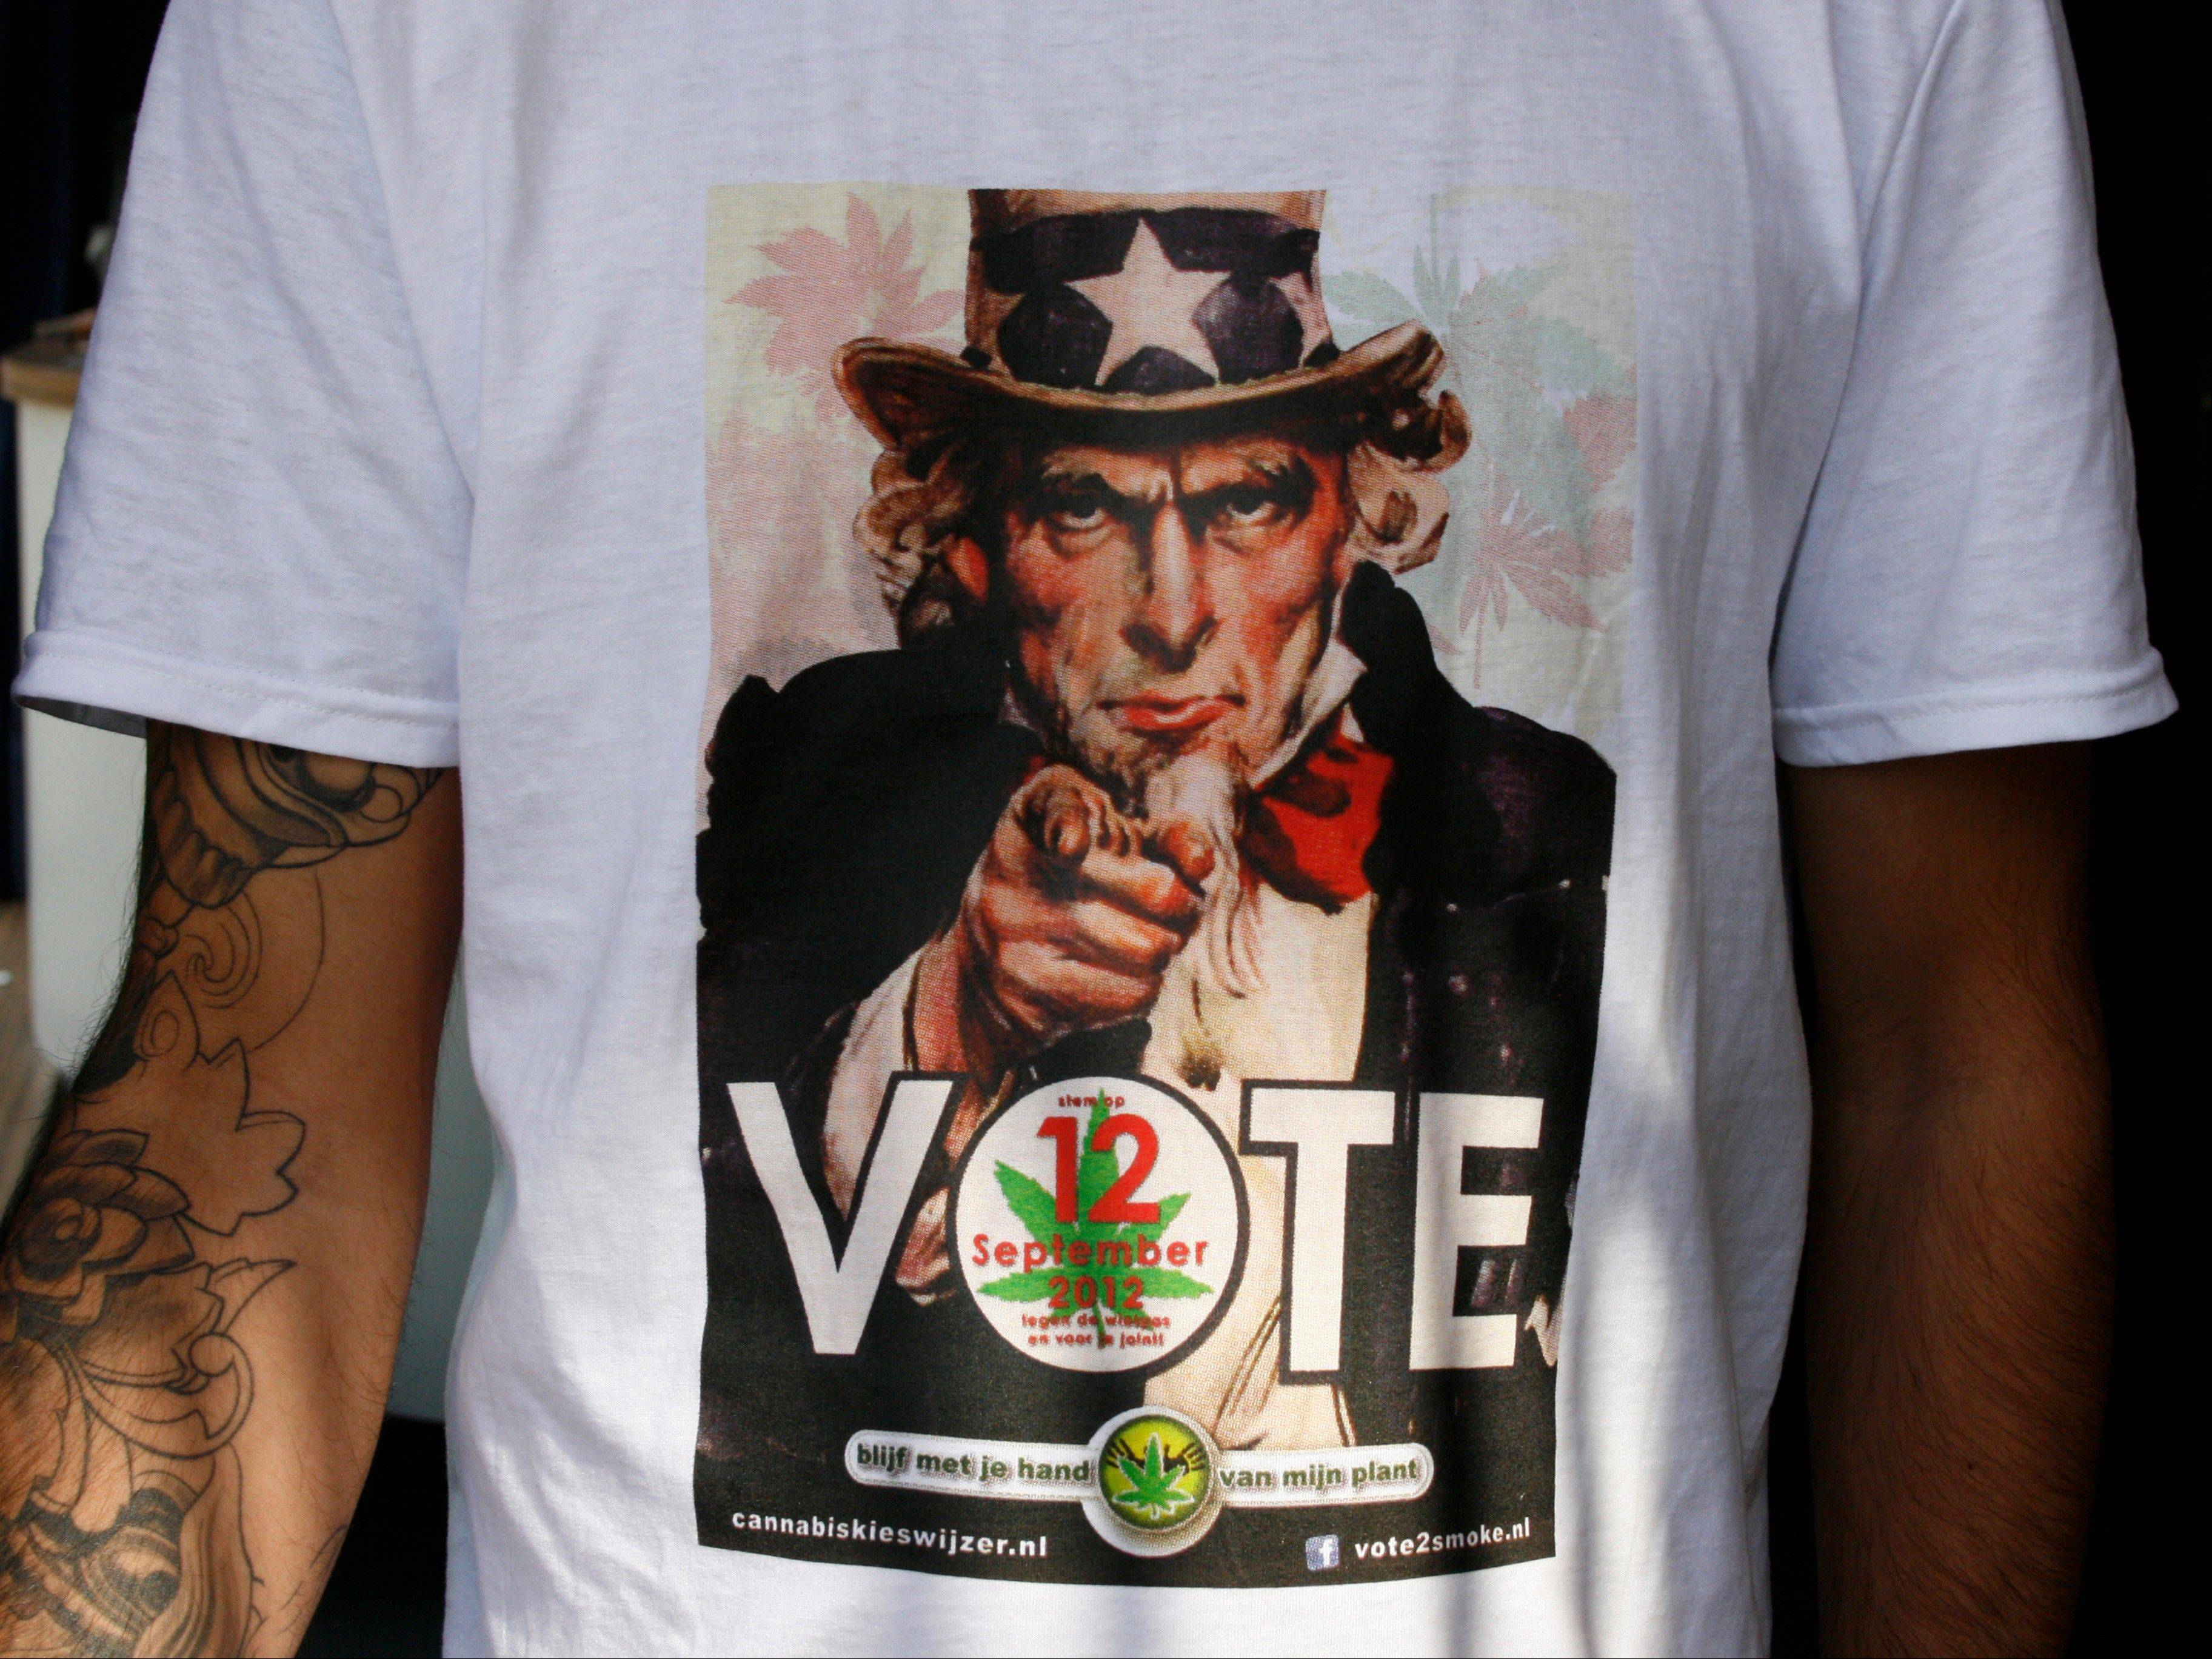 "Owners of the freewheeling cafes where bags of hashish are sold alongside cups of coffee are mounting a get-out-the-stoner-vote campaign to encourage the drugged up stoned voters ahead of next week's Dutch election. The campaigners are calling on their sometimes apathetic dope smoking clientele to get out and support political parties that oppose the recently introduced ""weed pass"" that is intended to rein in the cafes."